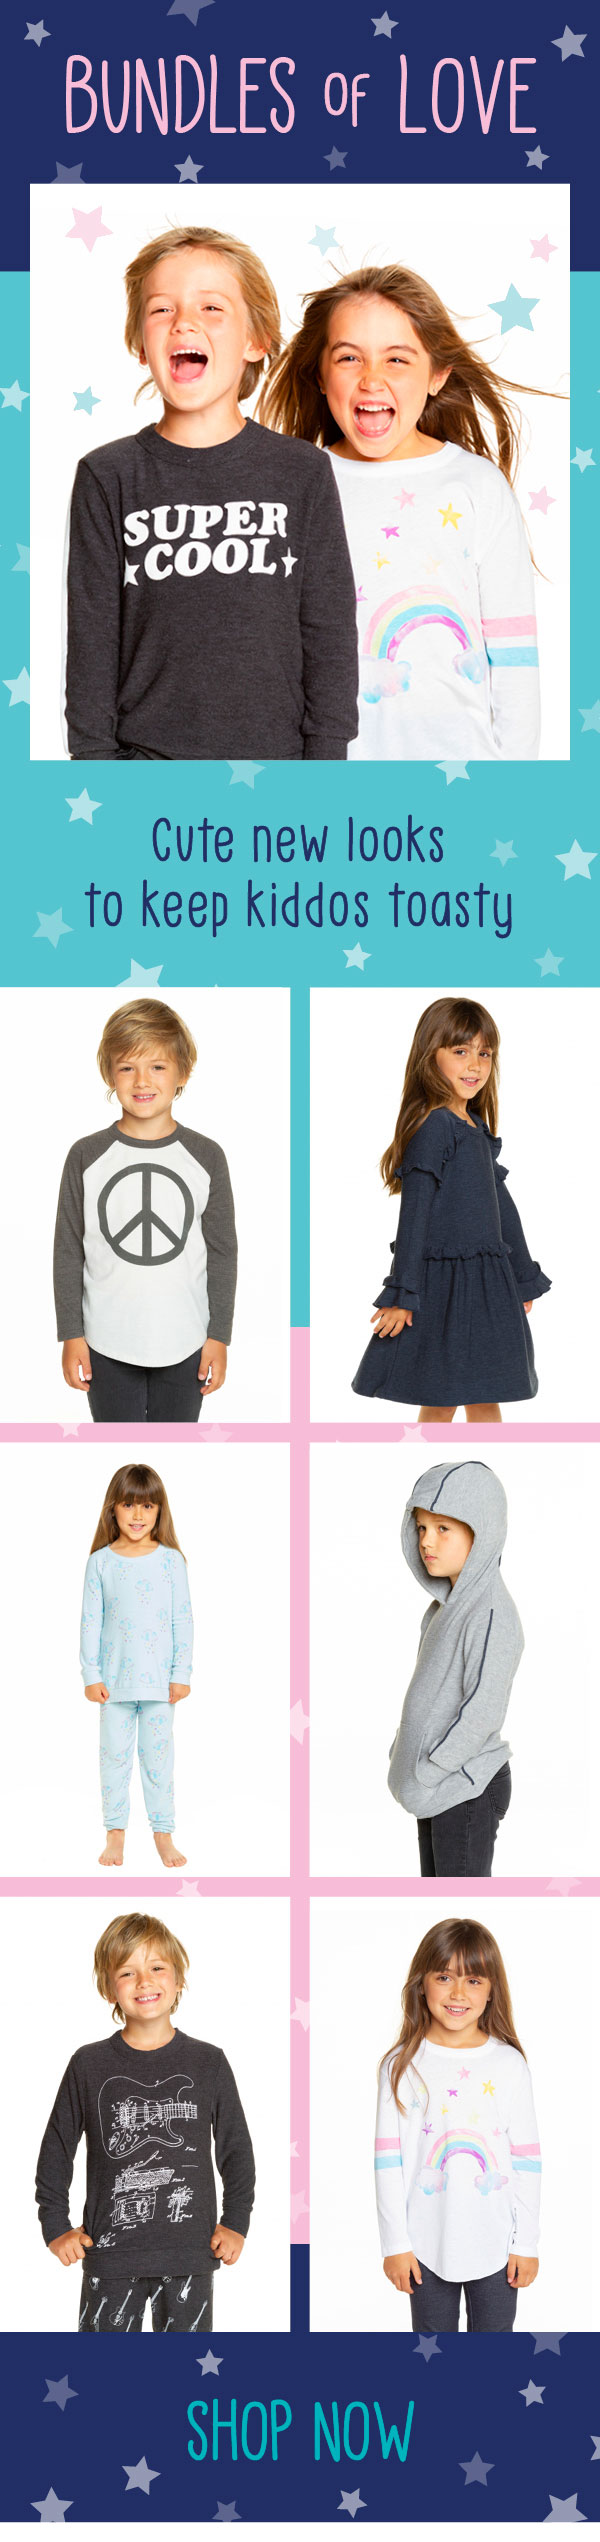 Cute new looks to keep kiddos toasty from Chaser